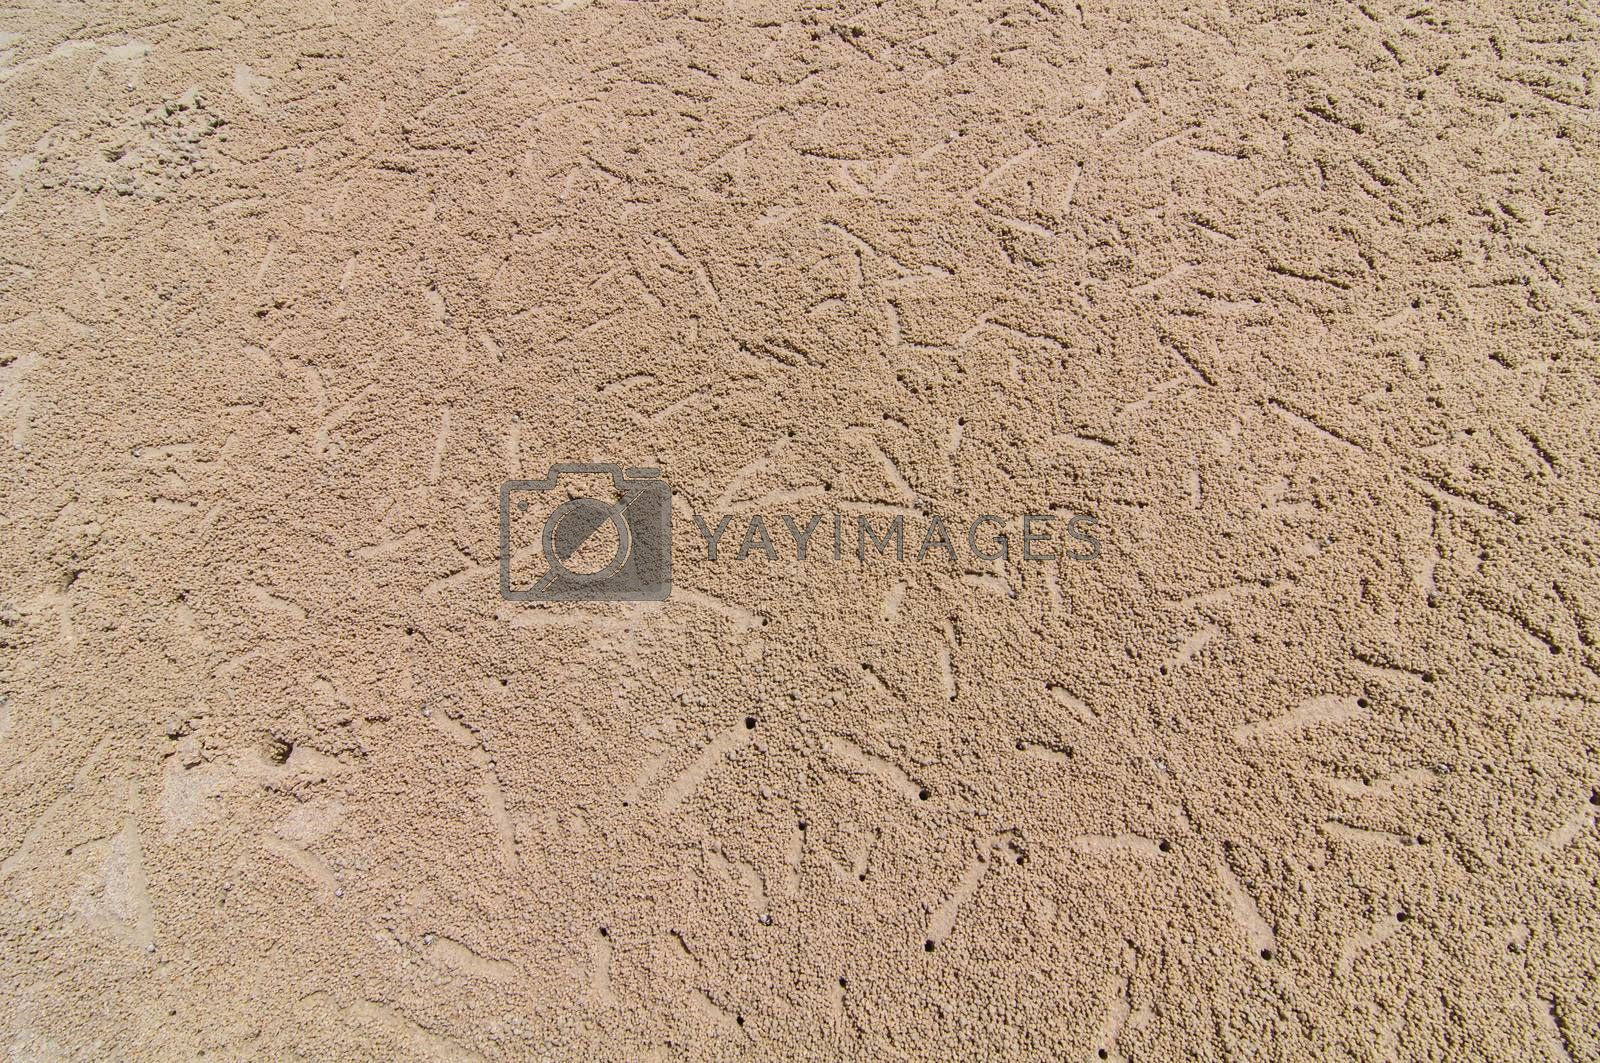 Royalty free image of Crab hole on the beach by Sorapop